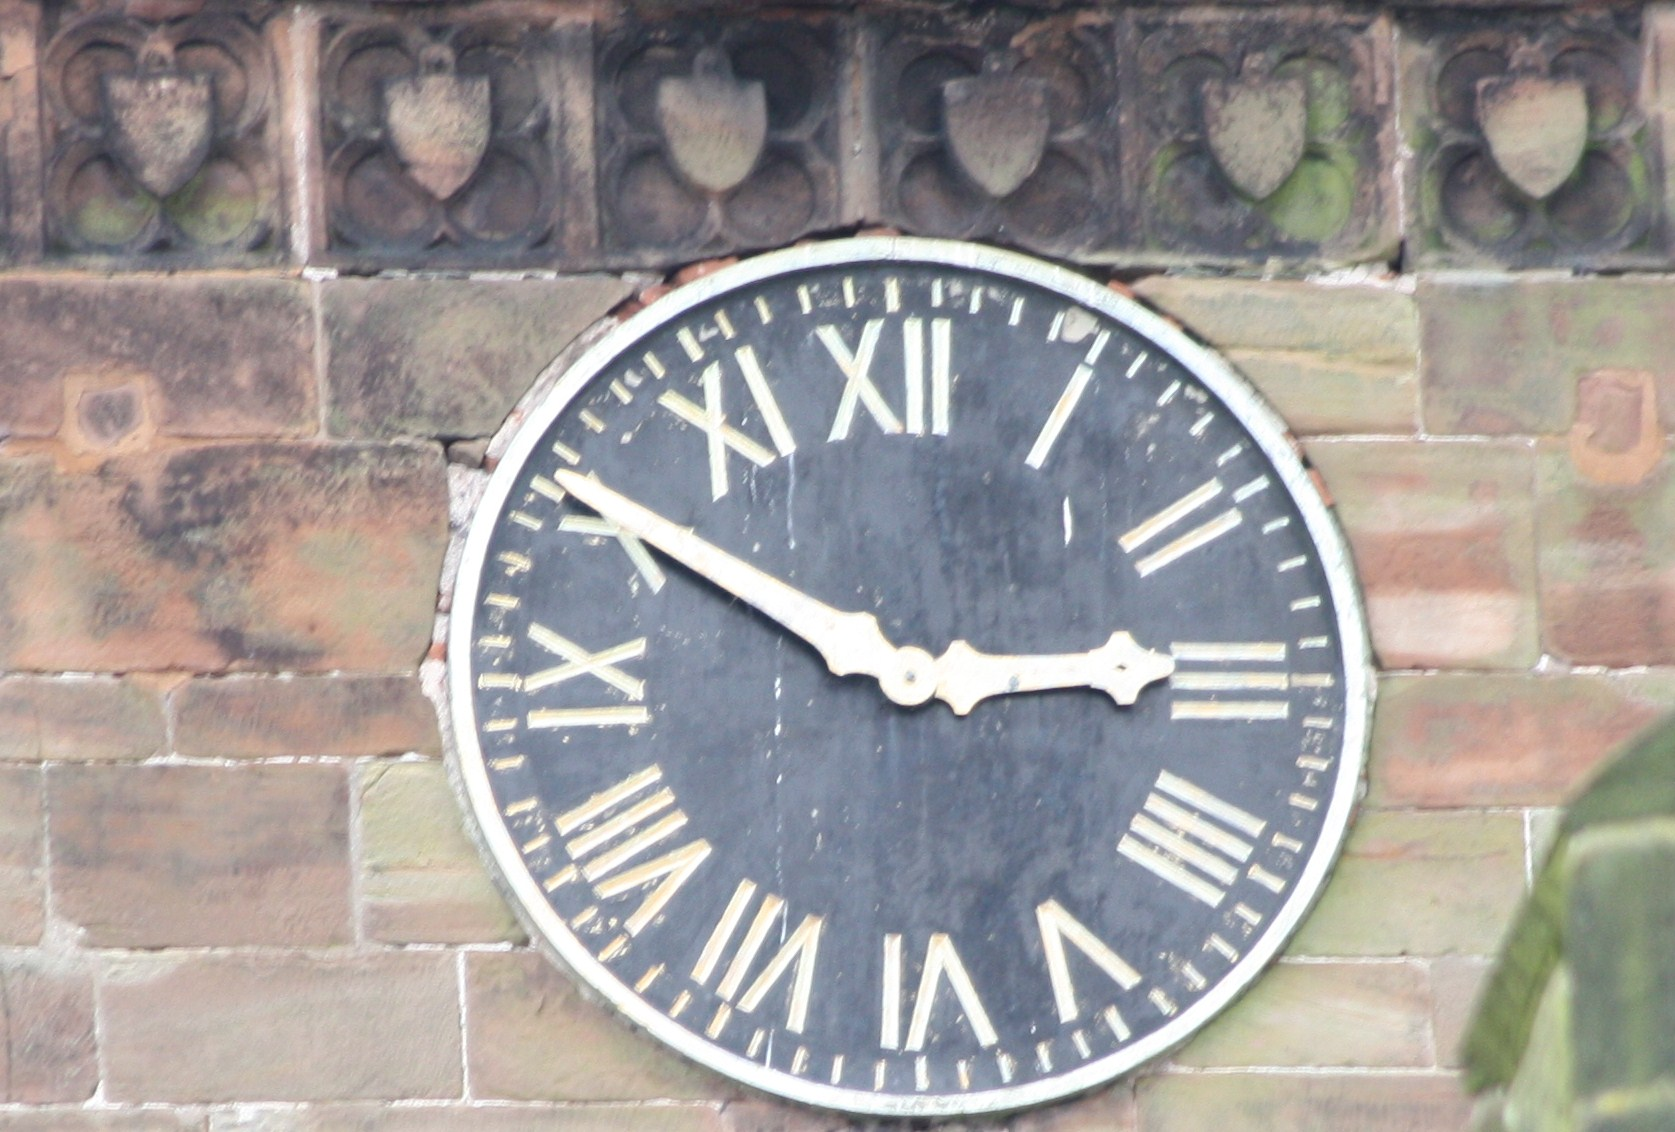 stands the church clock at ten to three